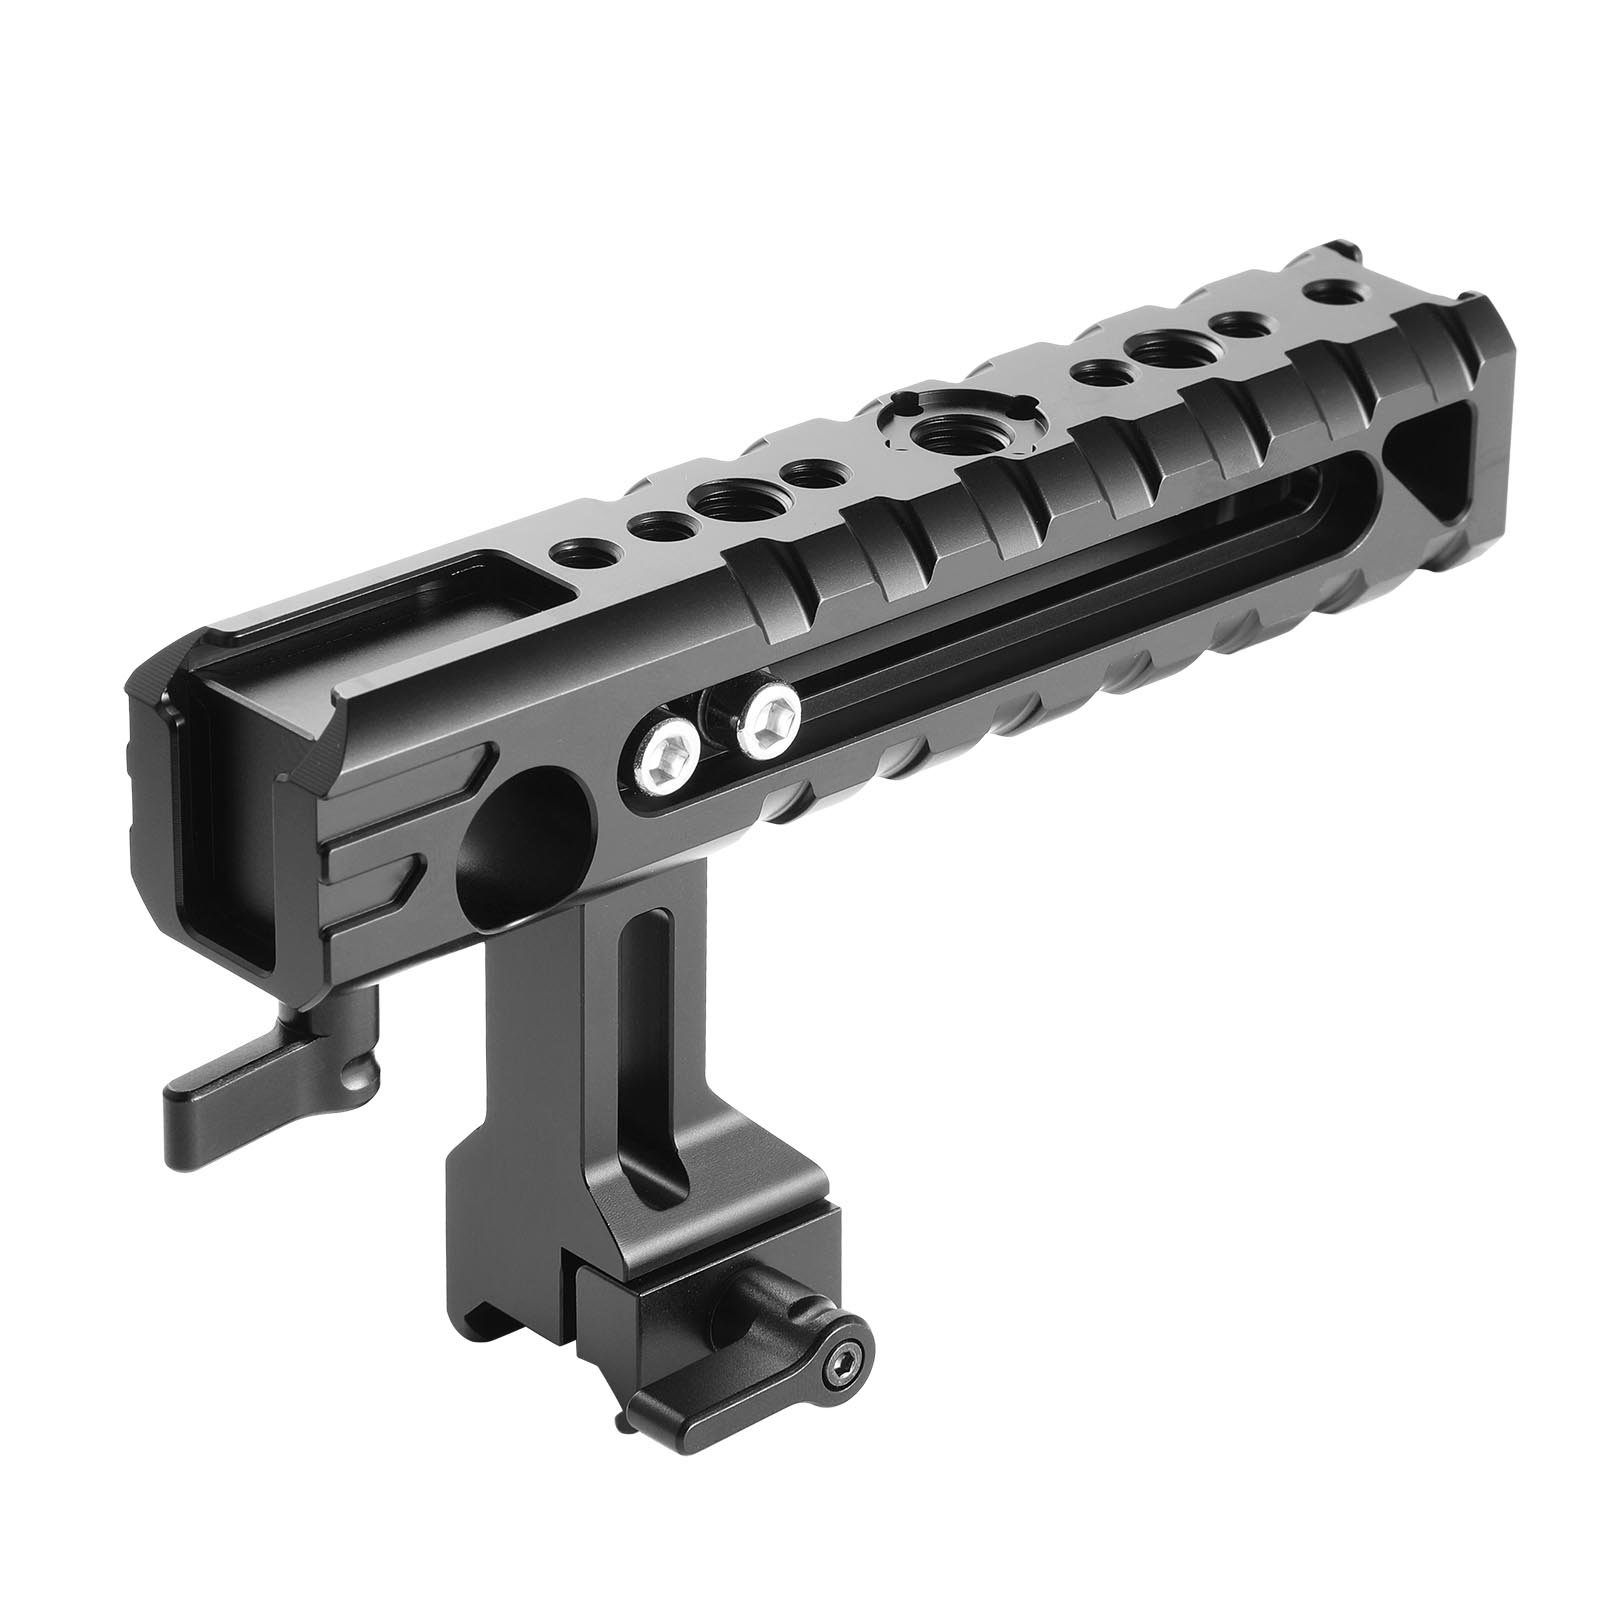 SMALLRIG QR Cheese NATO Side Handle with 15mm Rod Clamp Built-in Cold Shoe for EVF/Microphone Shock Mount- 1688 by SMALLRIG